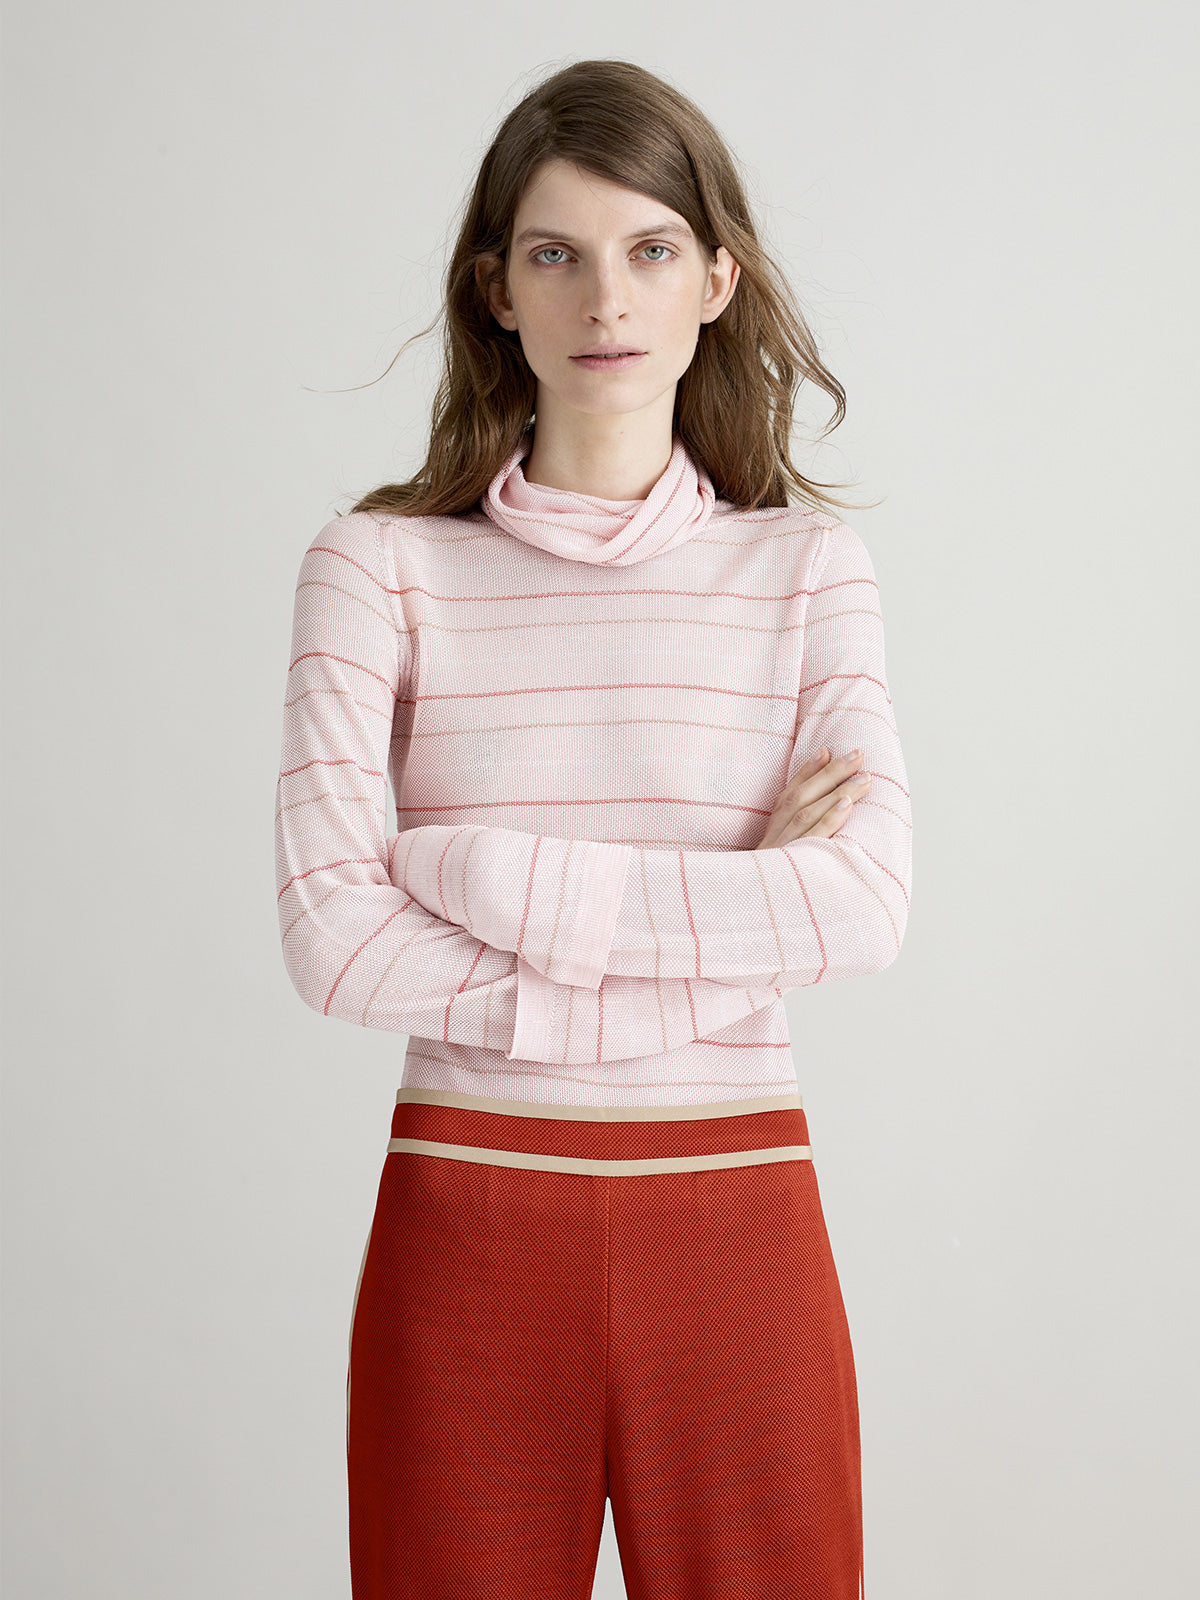 Tulip Polo Neck Top, Pink Stripe - Sykes London